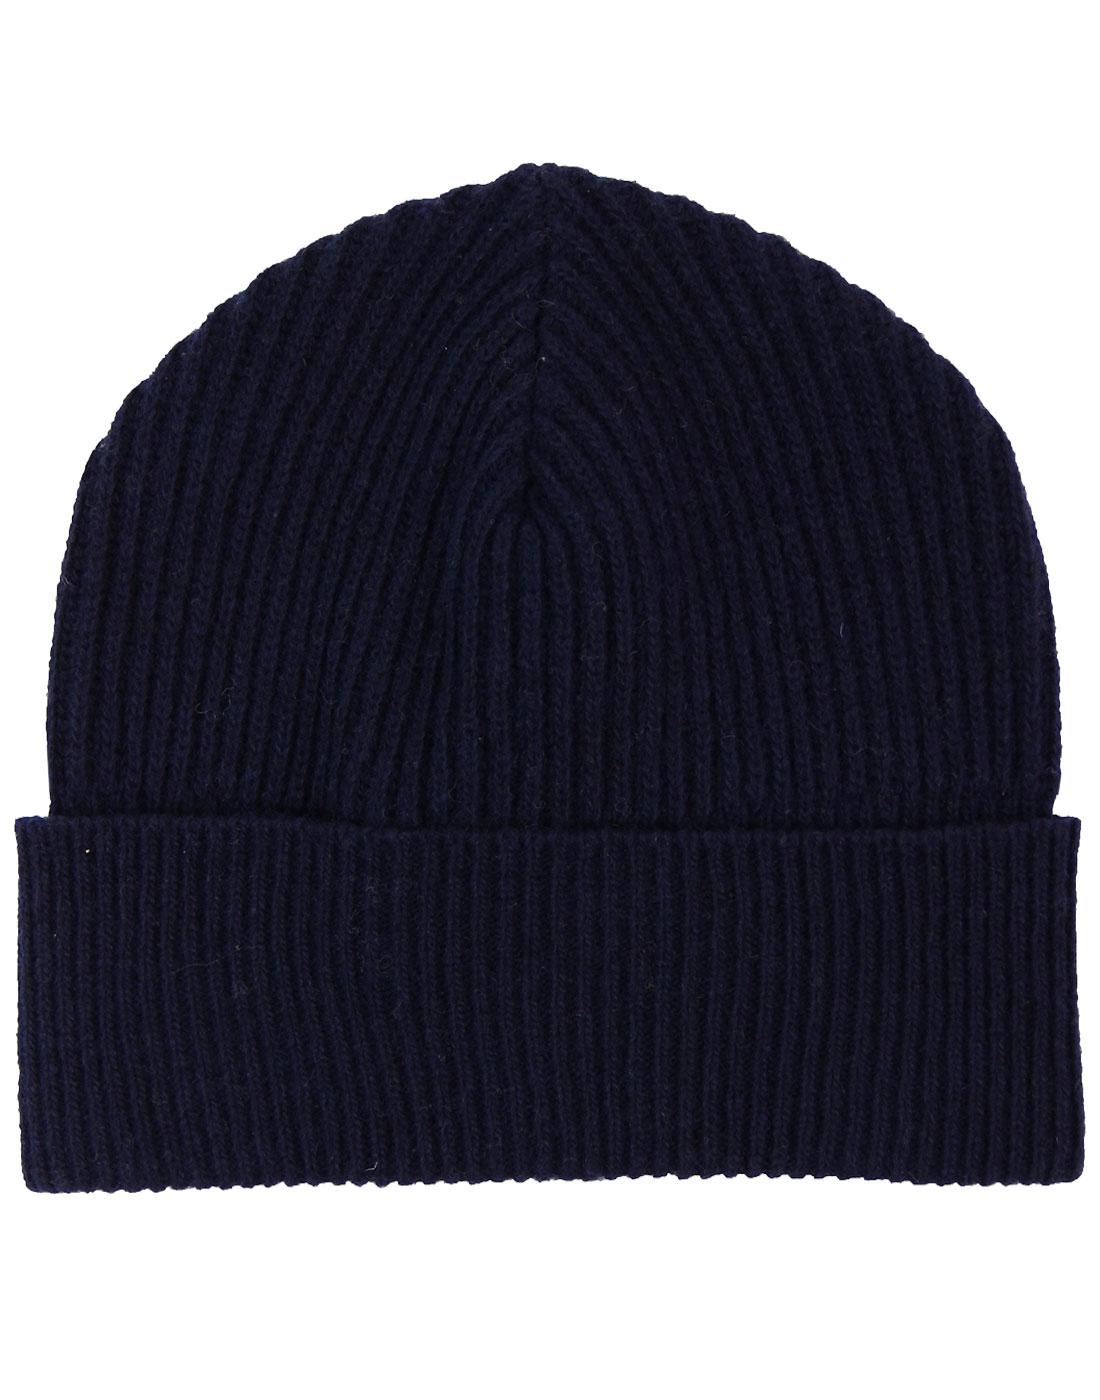 GLOVERALL Retro Knitted Lambswool Fisherman's Hat